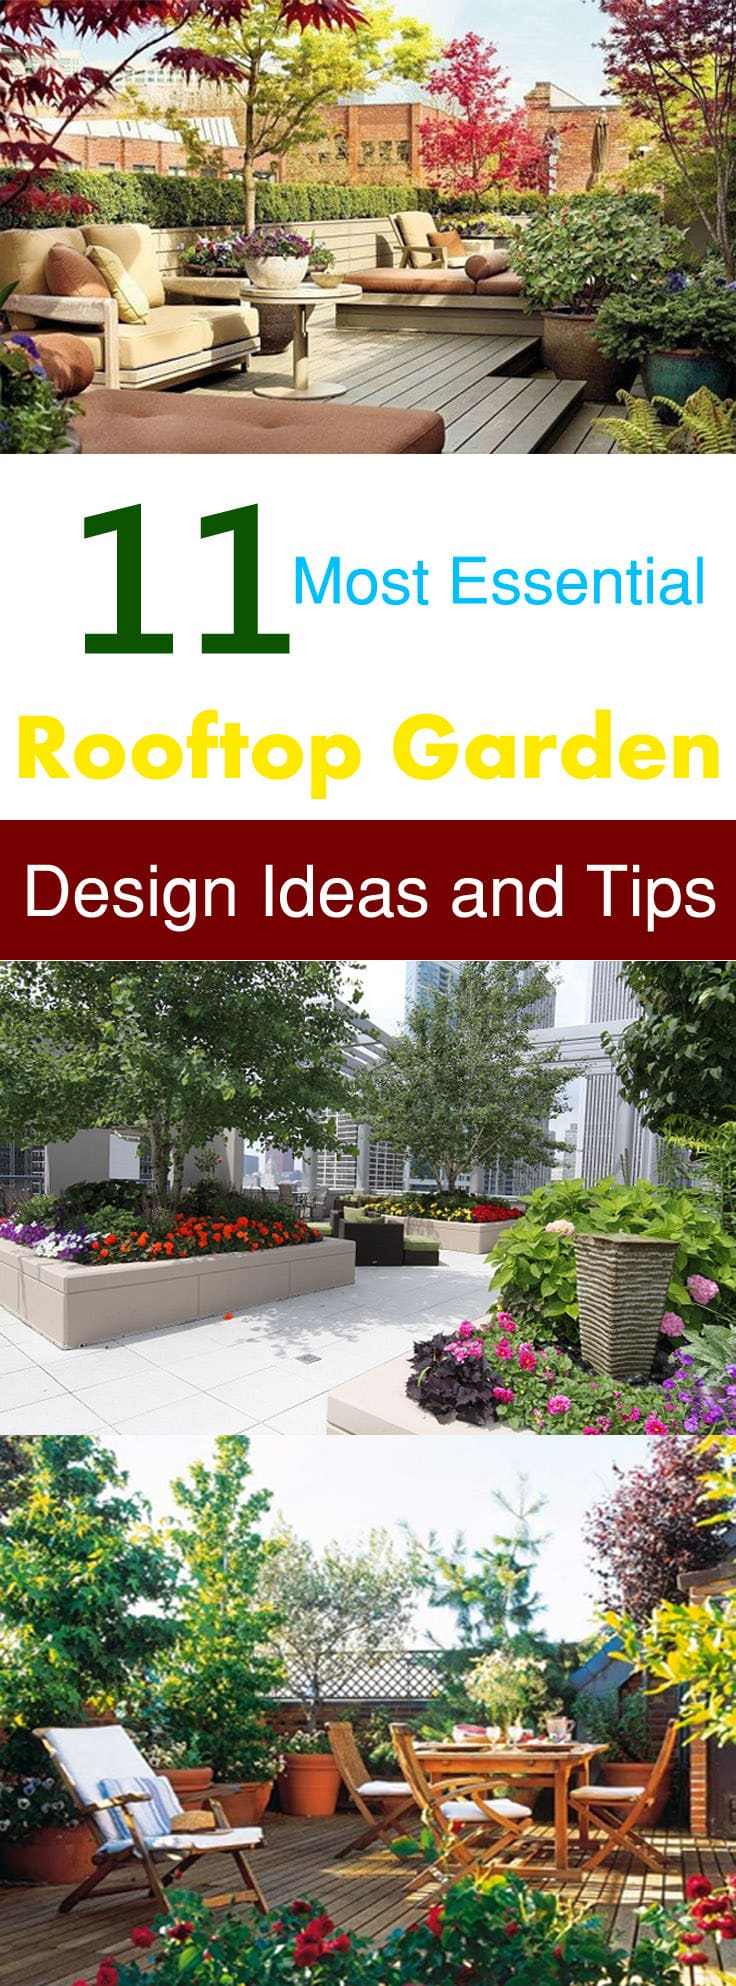 Beautiful small terrace gardens - Whether You Have A Rooftop Or You Are Planning To Have These 11 Rooftop Garden Design